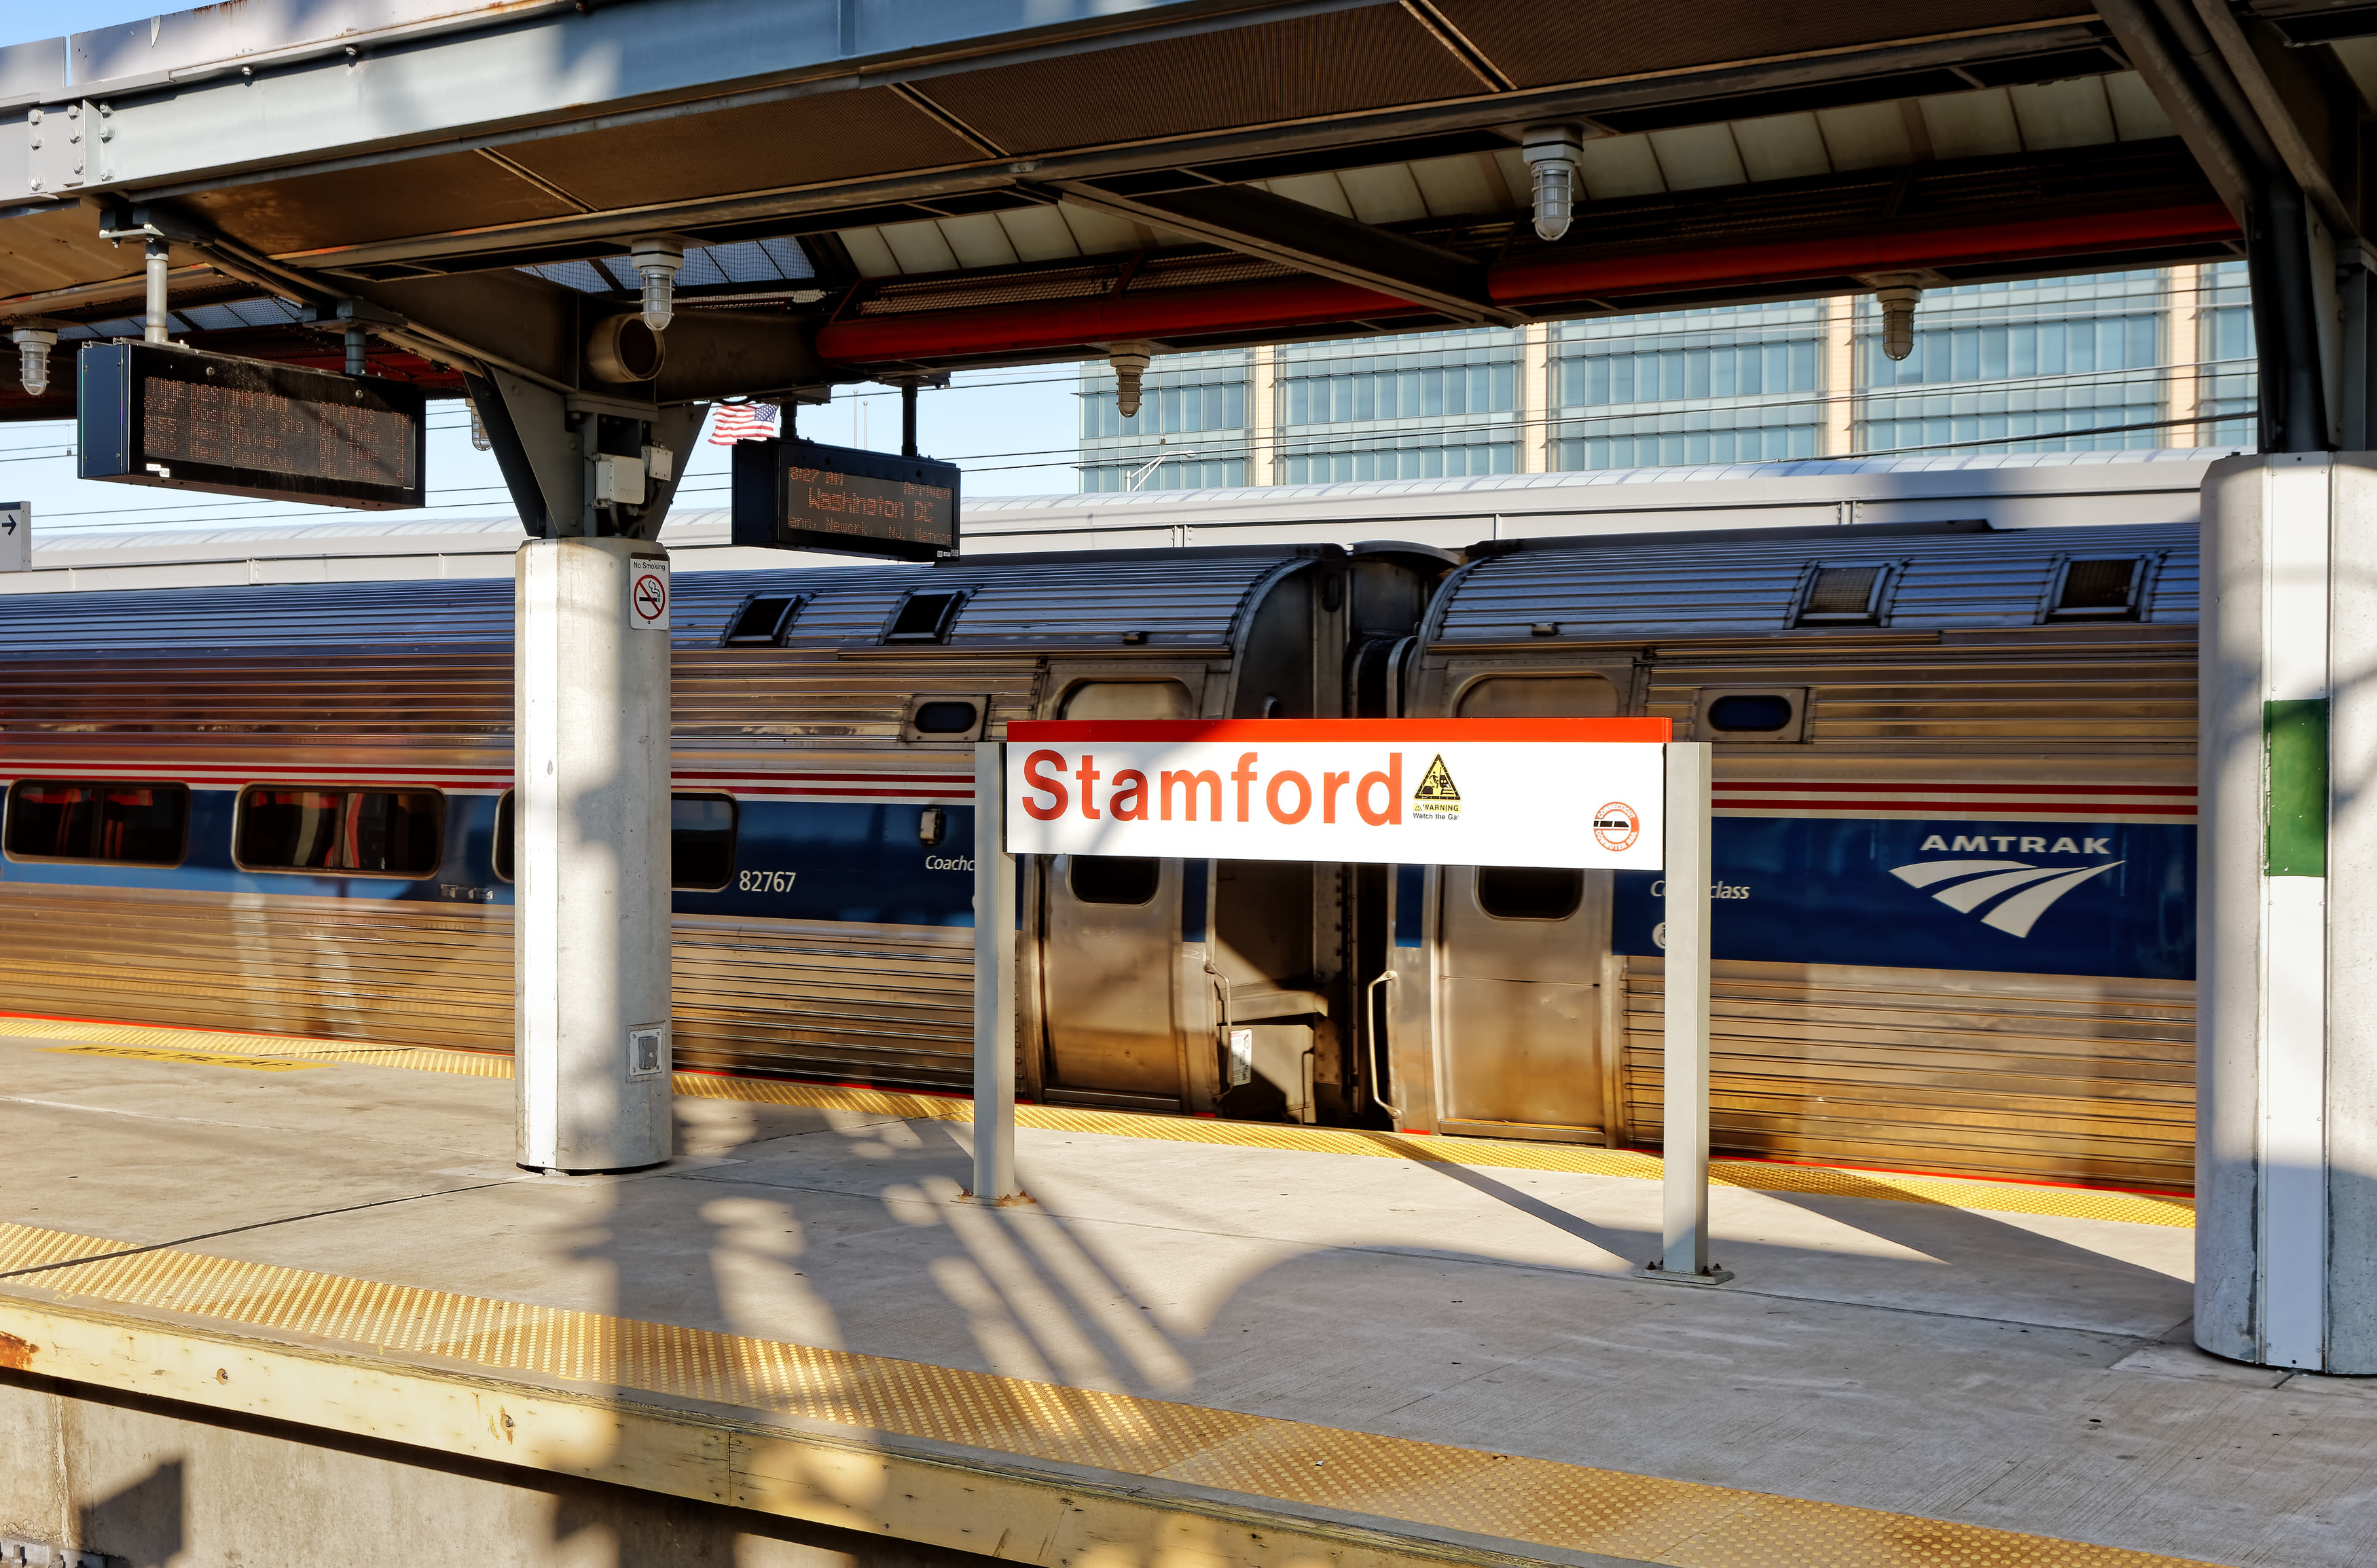 Stamford Amtrak station